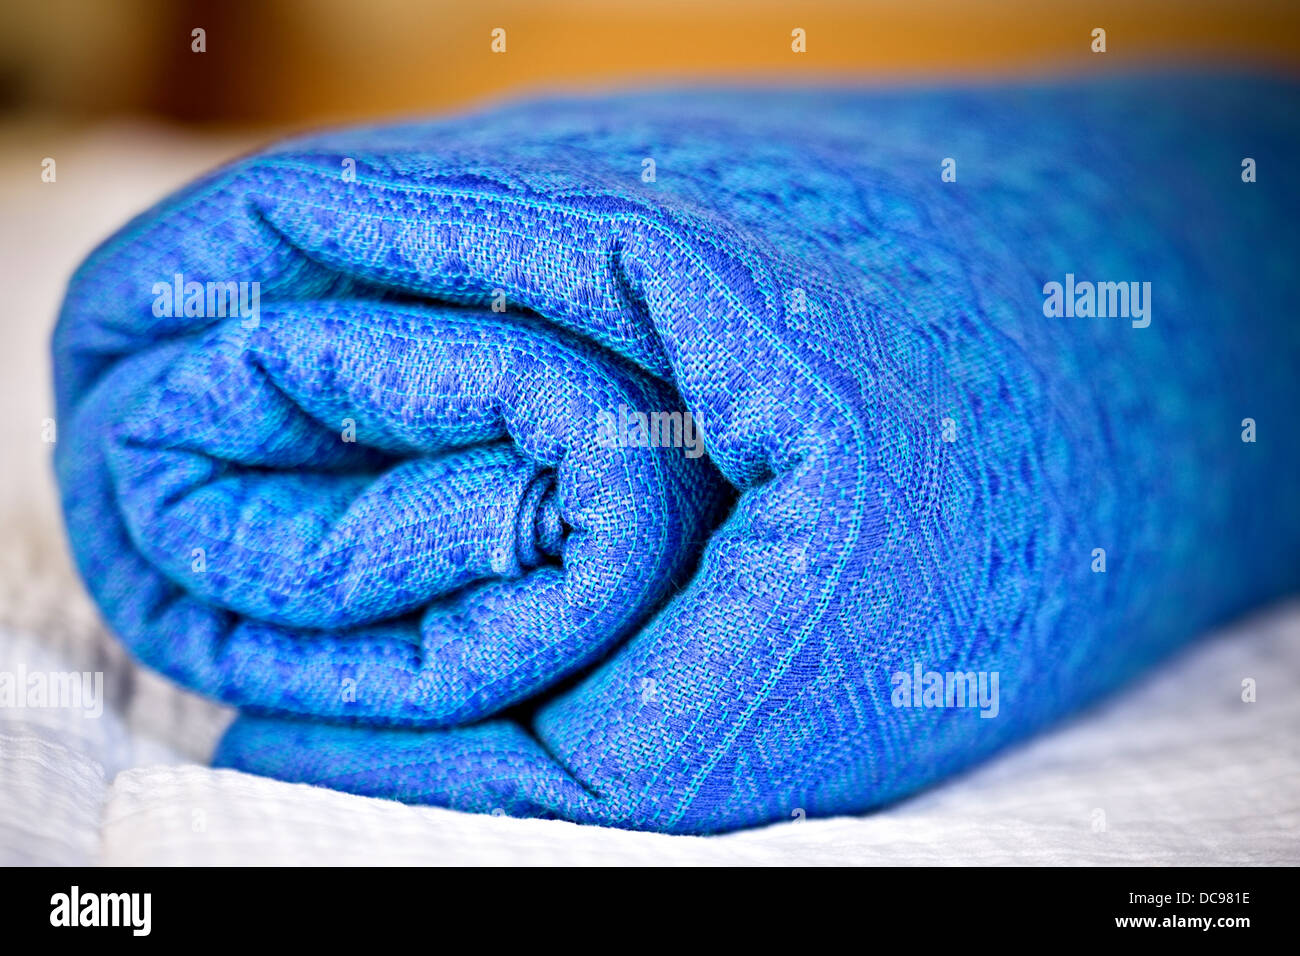 closeup of rolled blue baby sling - Stock Image